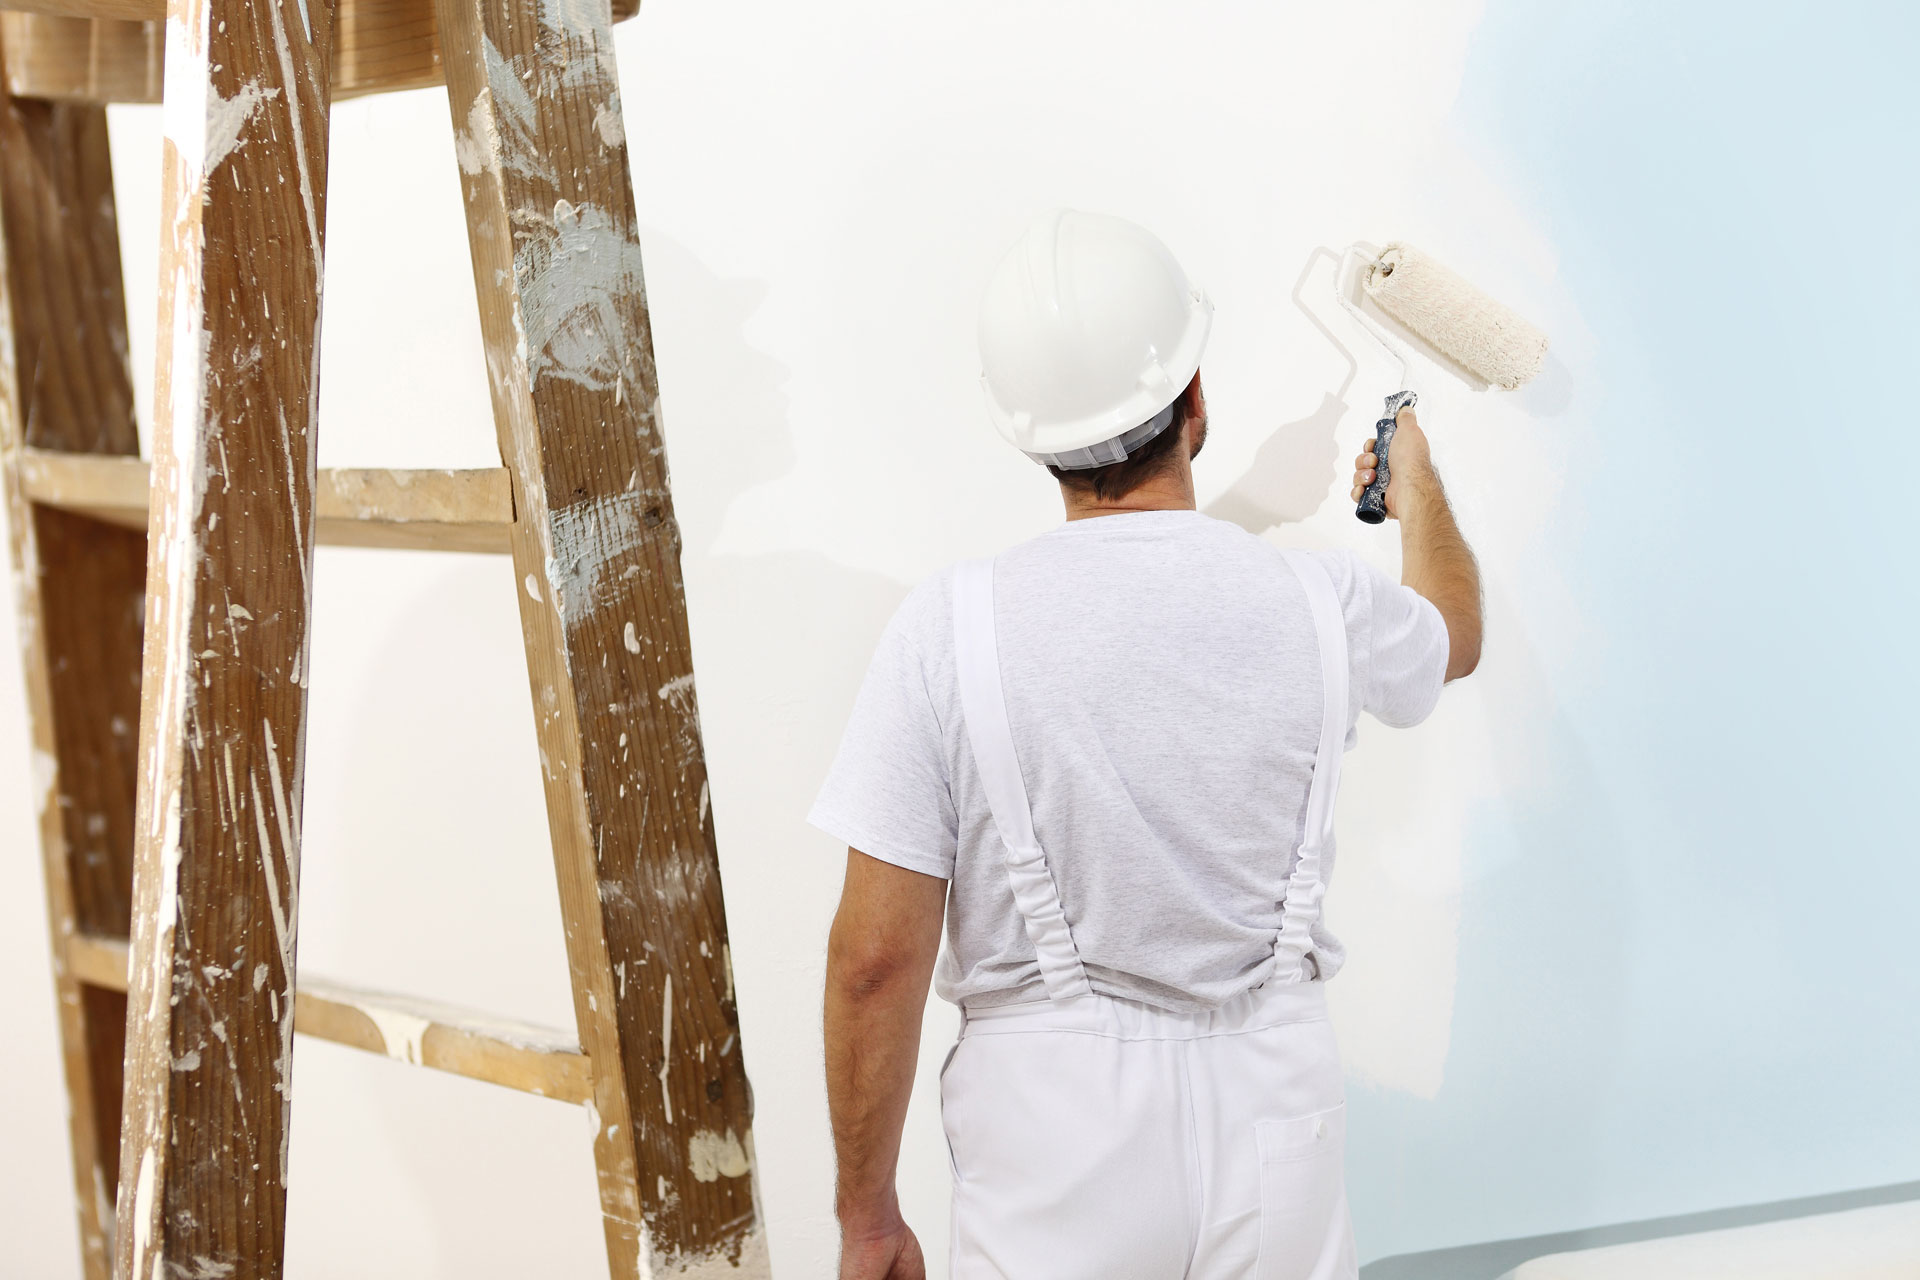 Repainting the Interior of Your Home